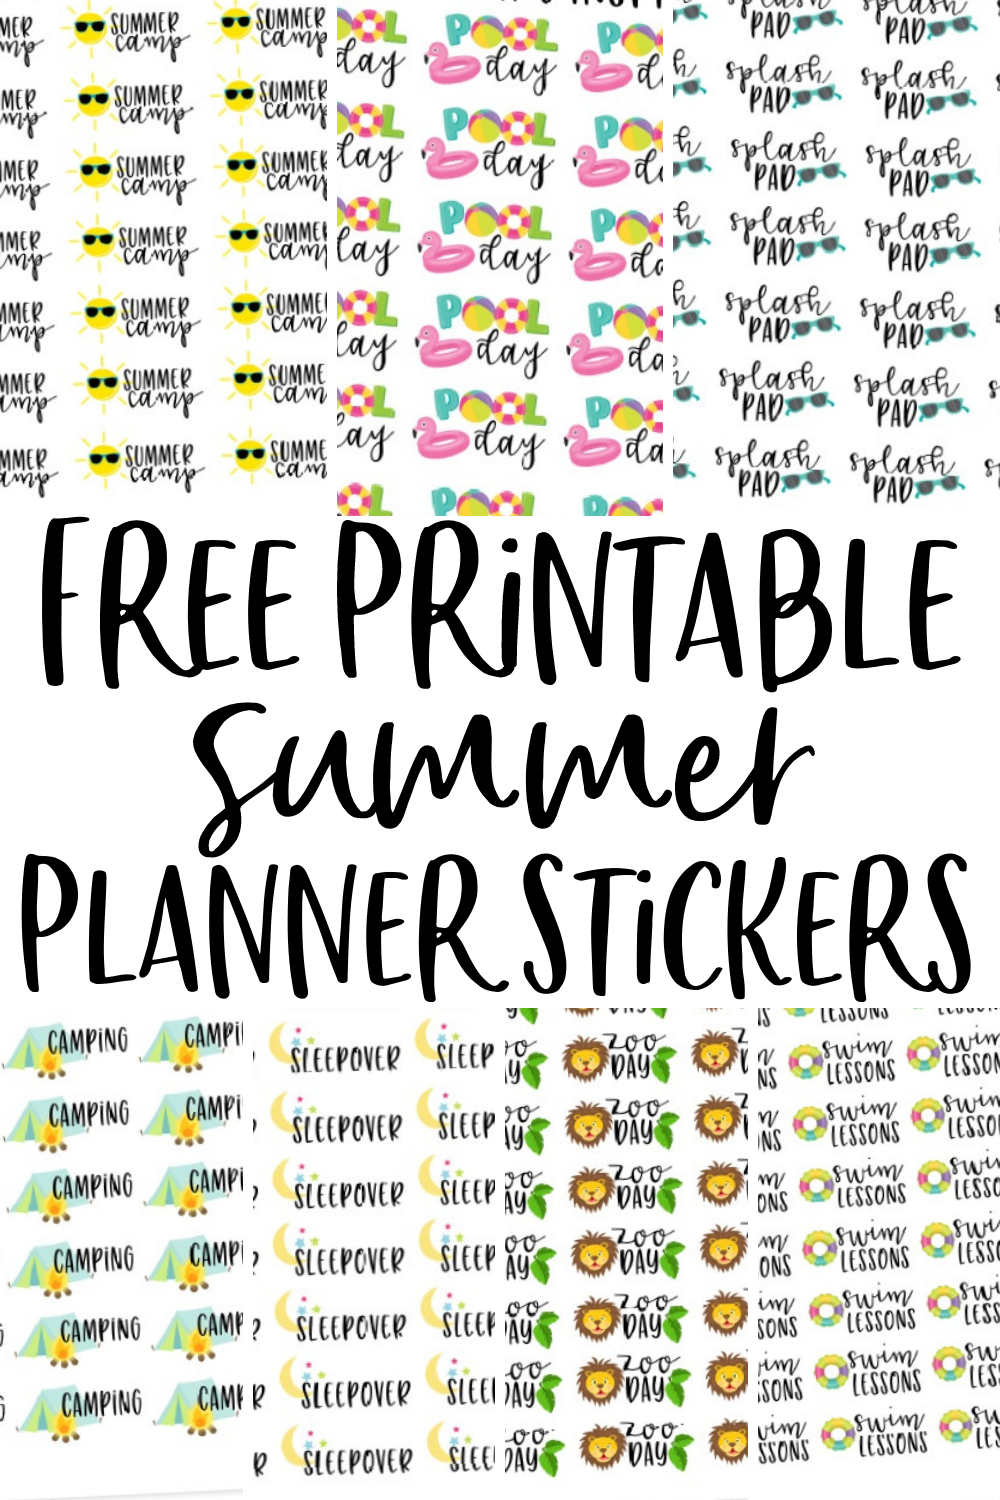 photo about Free Printable Stickers named Absolutely free Printable Planner Stickers for Summer time - Developing Impressed